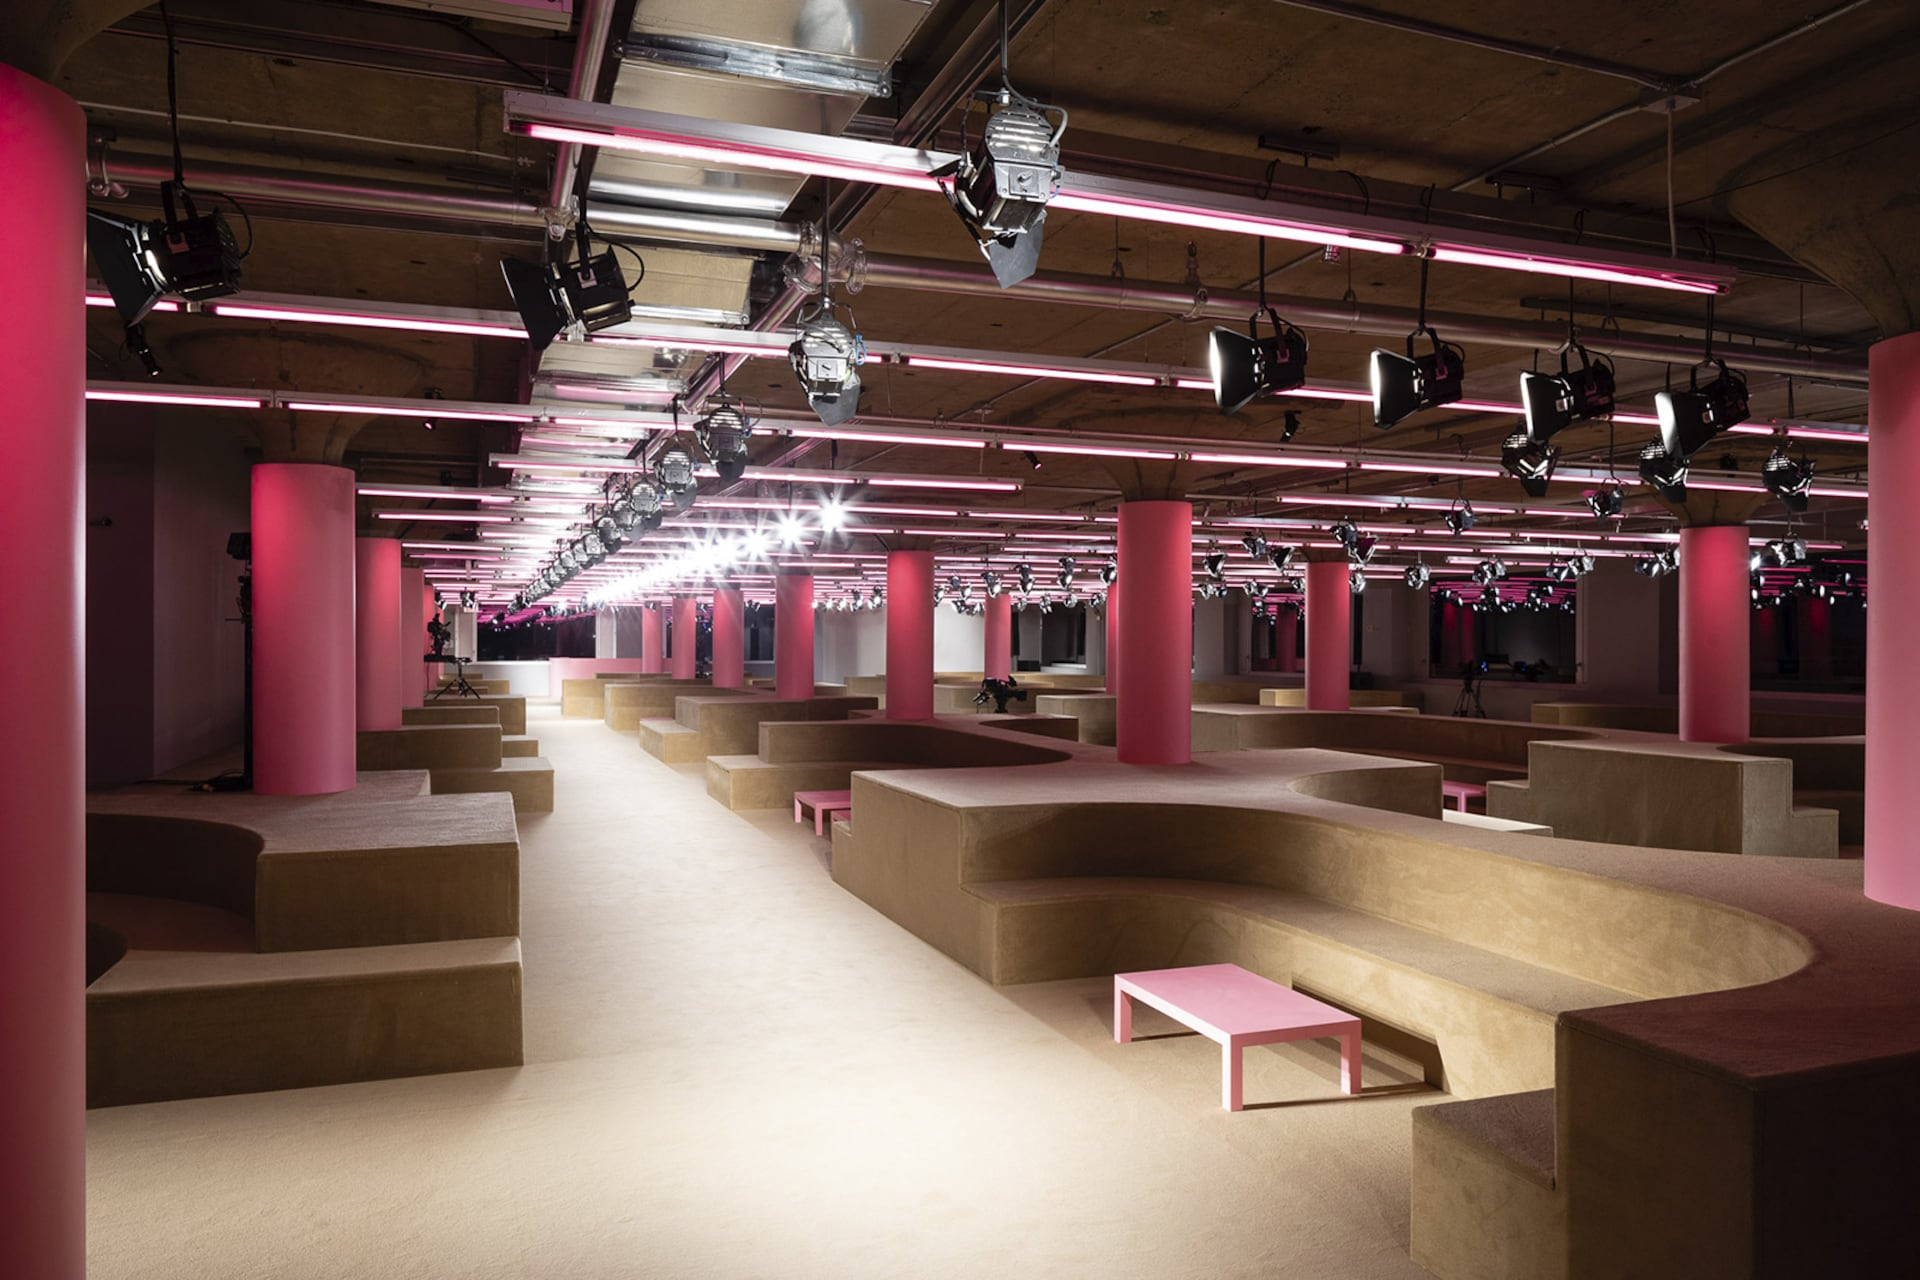 Prada Resort 2020 fashion show space 7. For the Prada 2020 Resort Show, AMO takes over the Piano Factory, Prada US's headquarters, and reinterprets it as an intimate setting for social gathering.